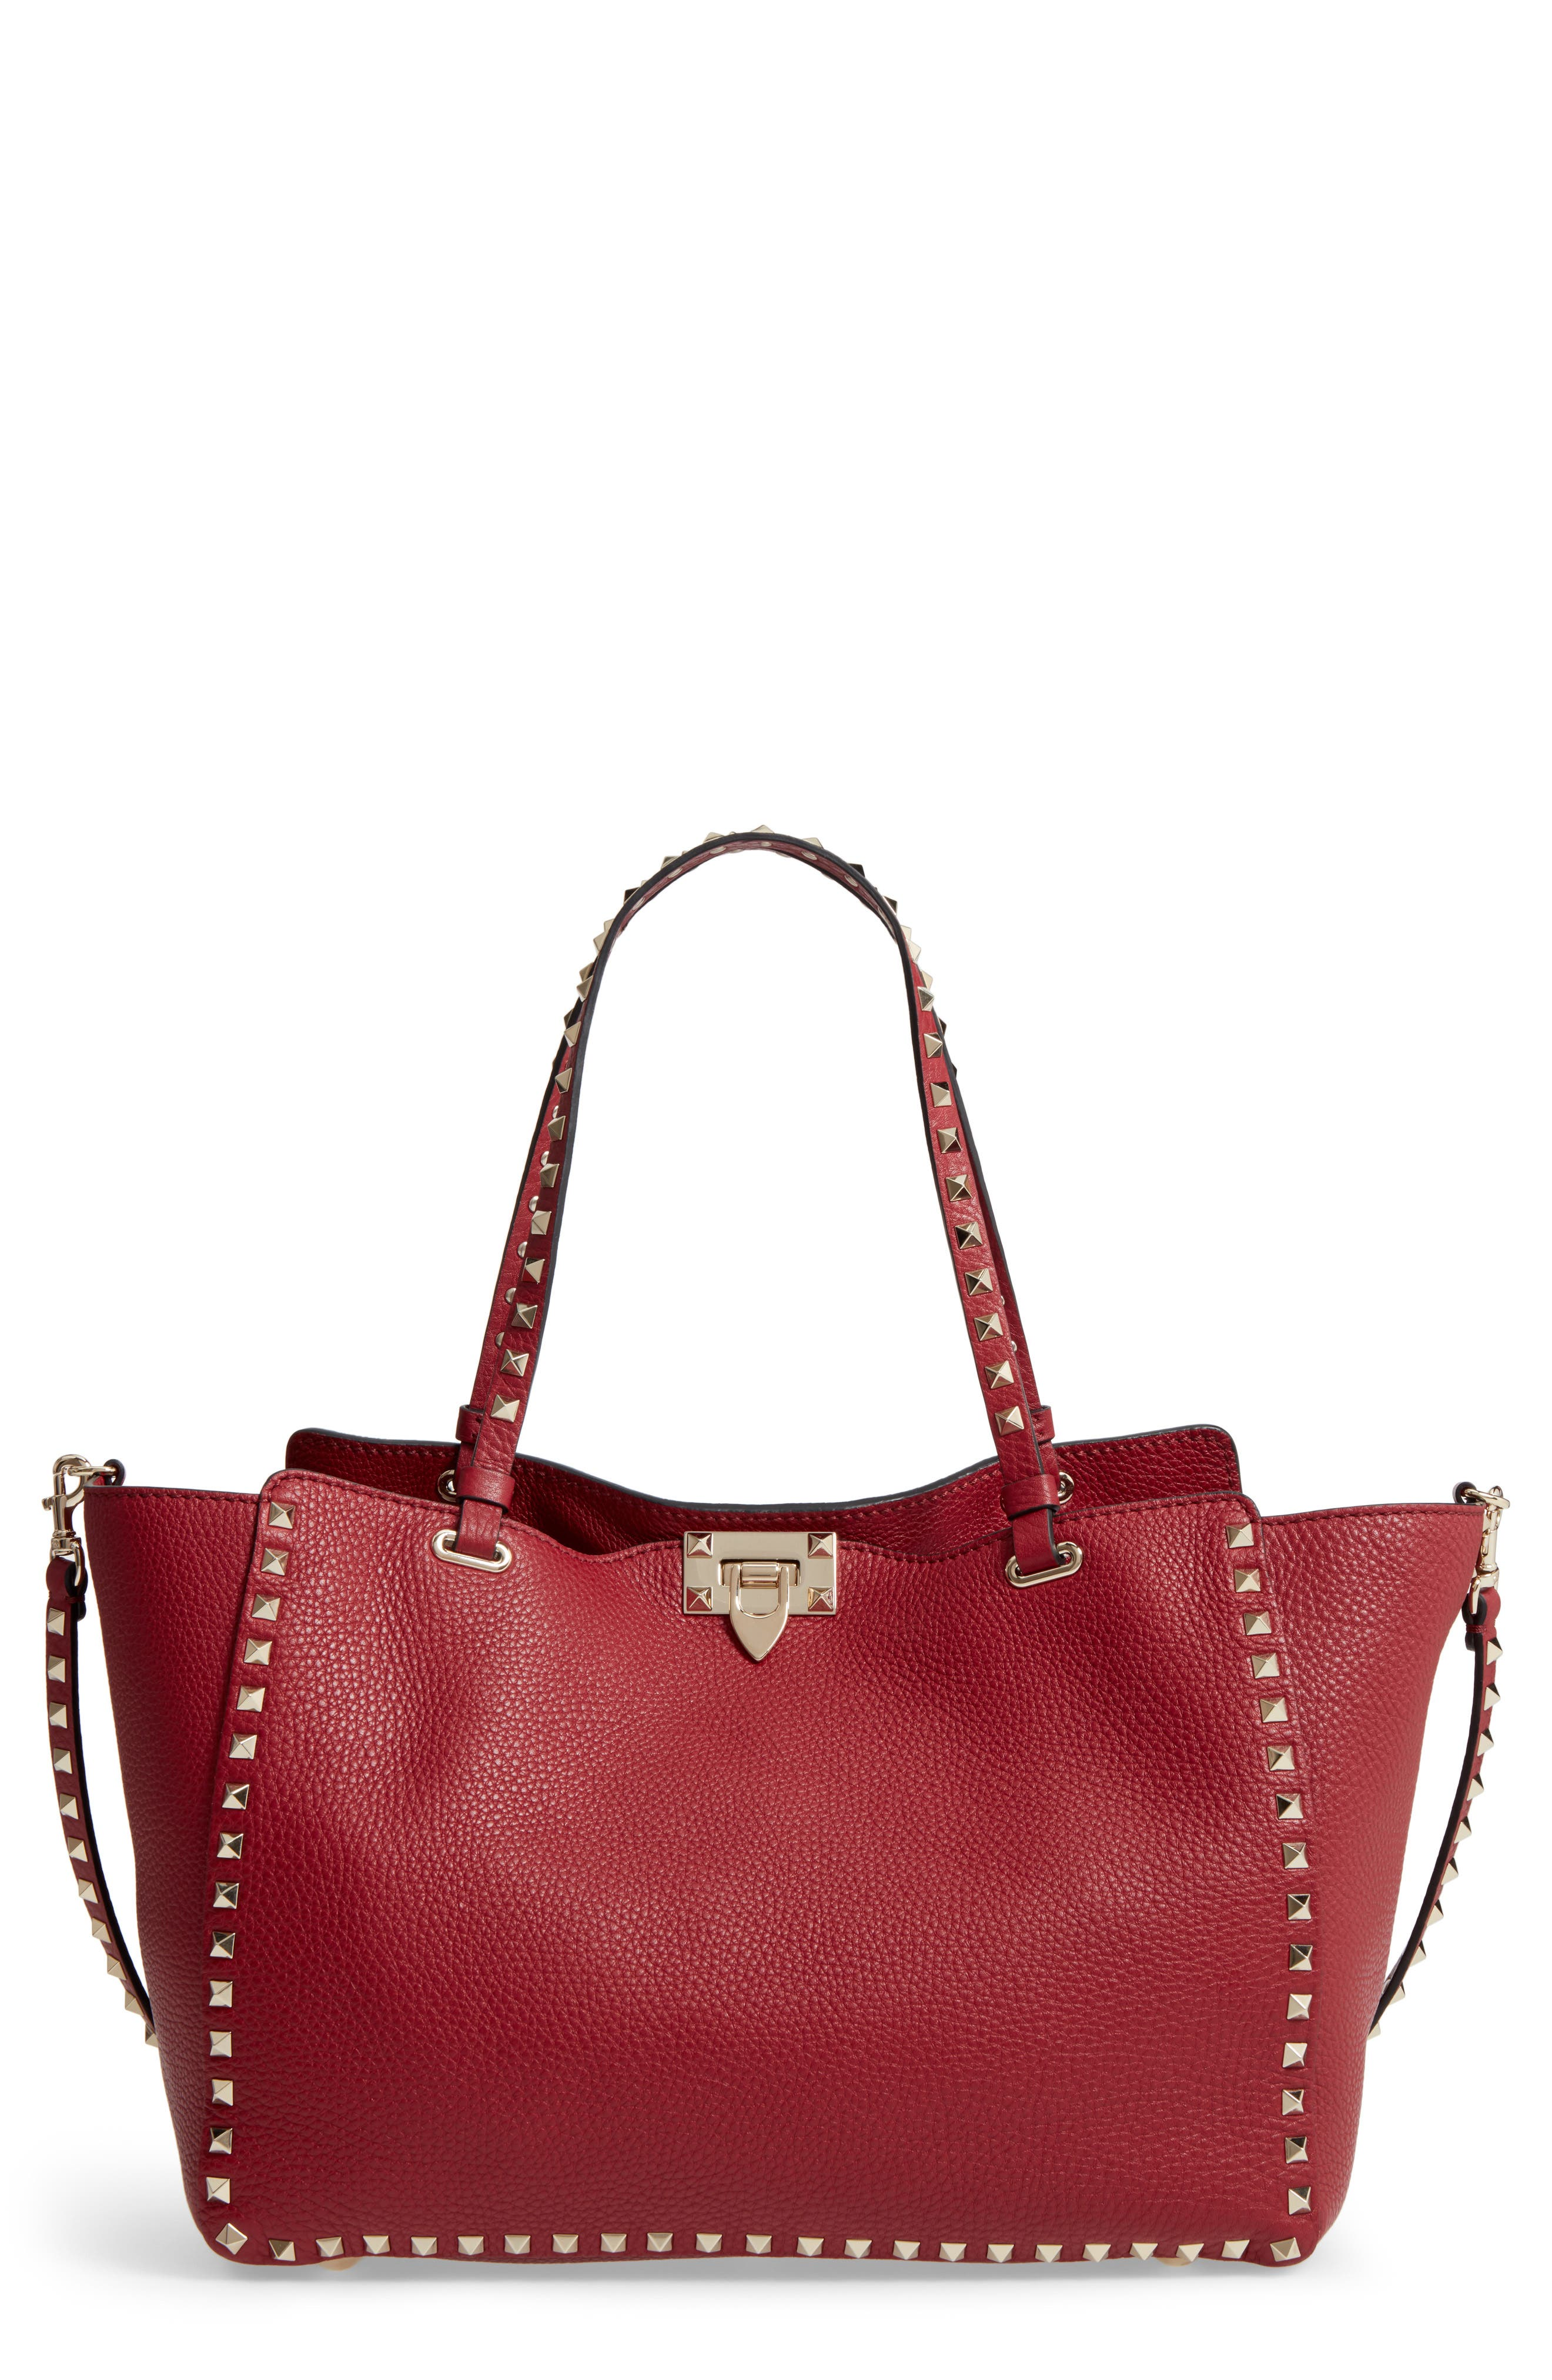 Medium Rockstud Grained Calfskin Leather Tote,                             Main thumbnail 1, color,                             930